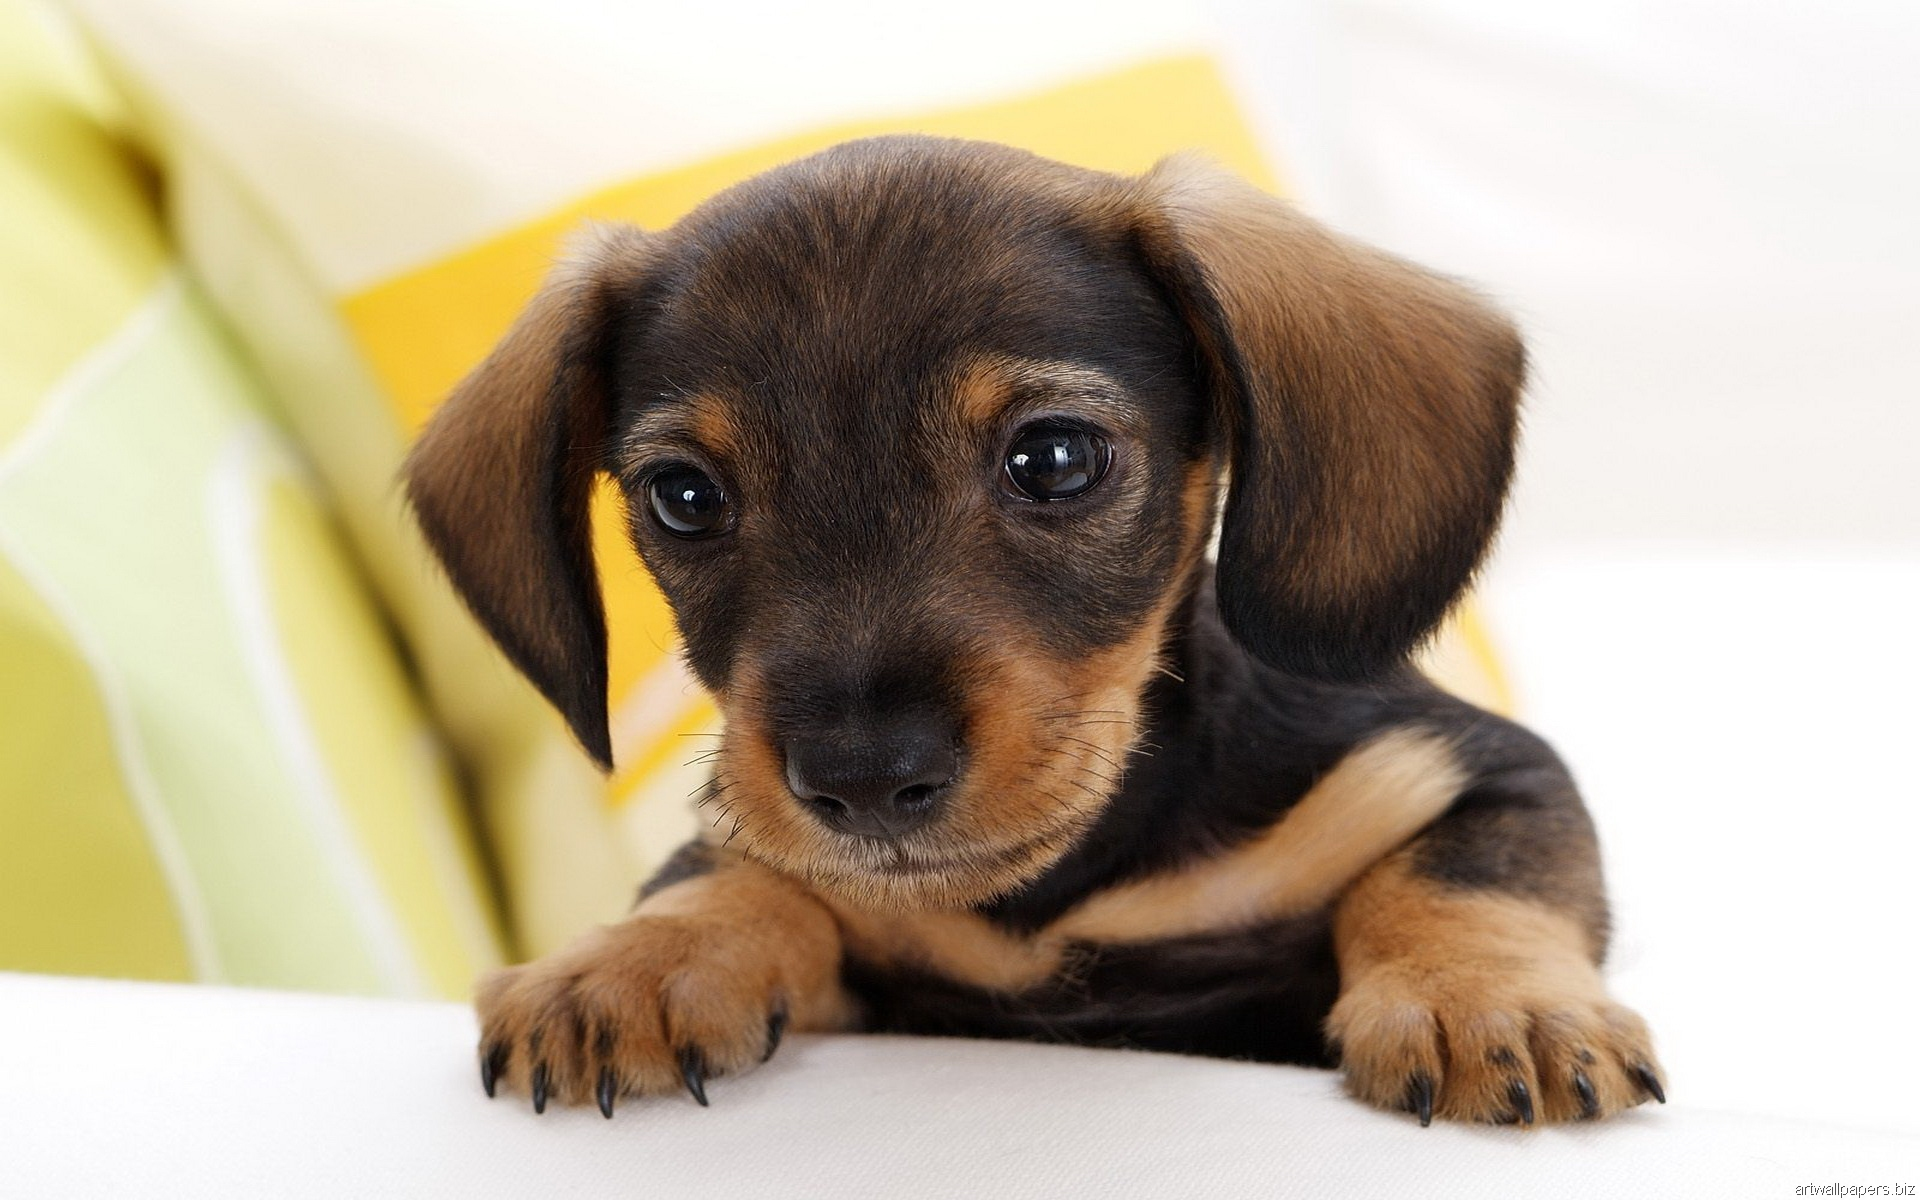 Hd Dachshund Puppy Wallpaper HD Walls Find Wallpapers 1920x1200